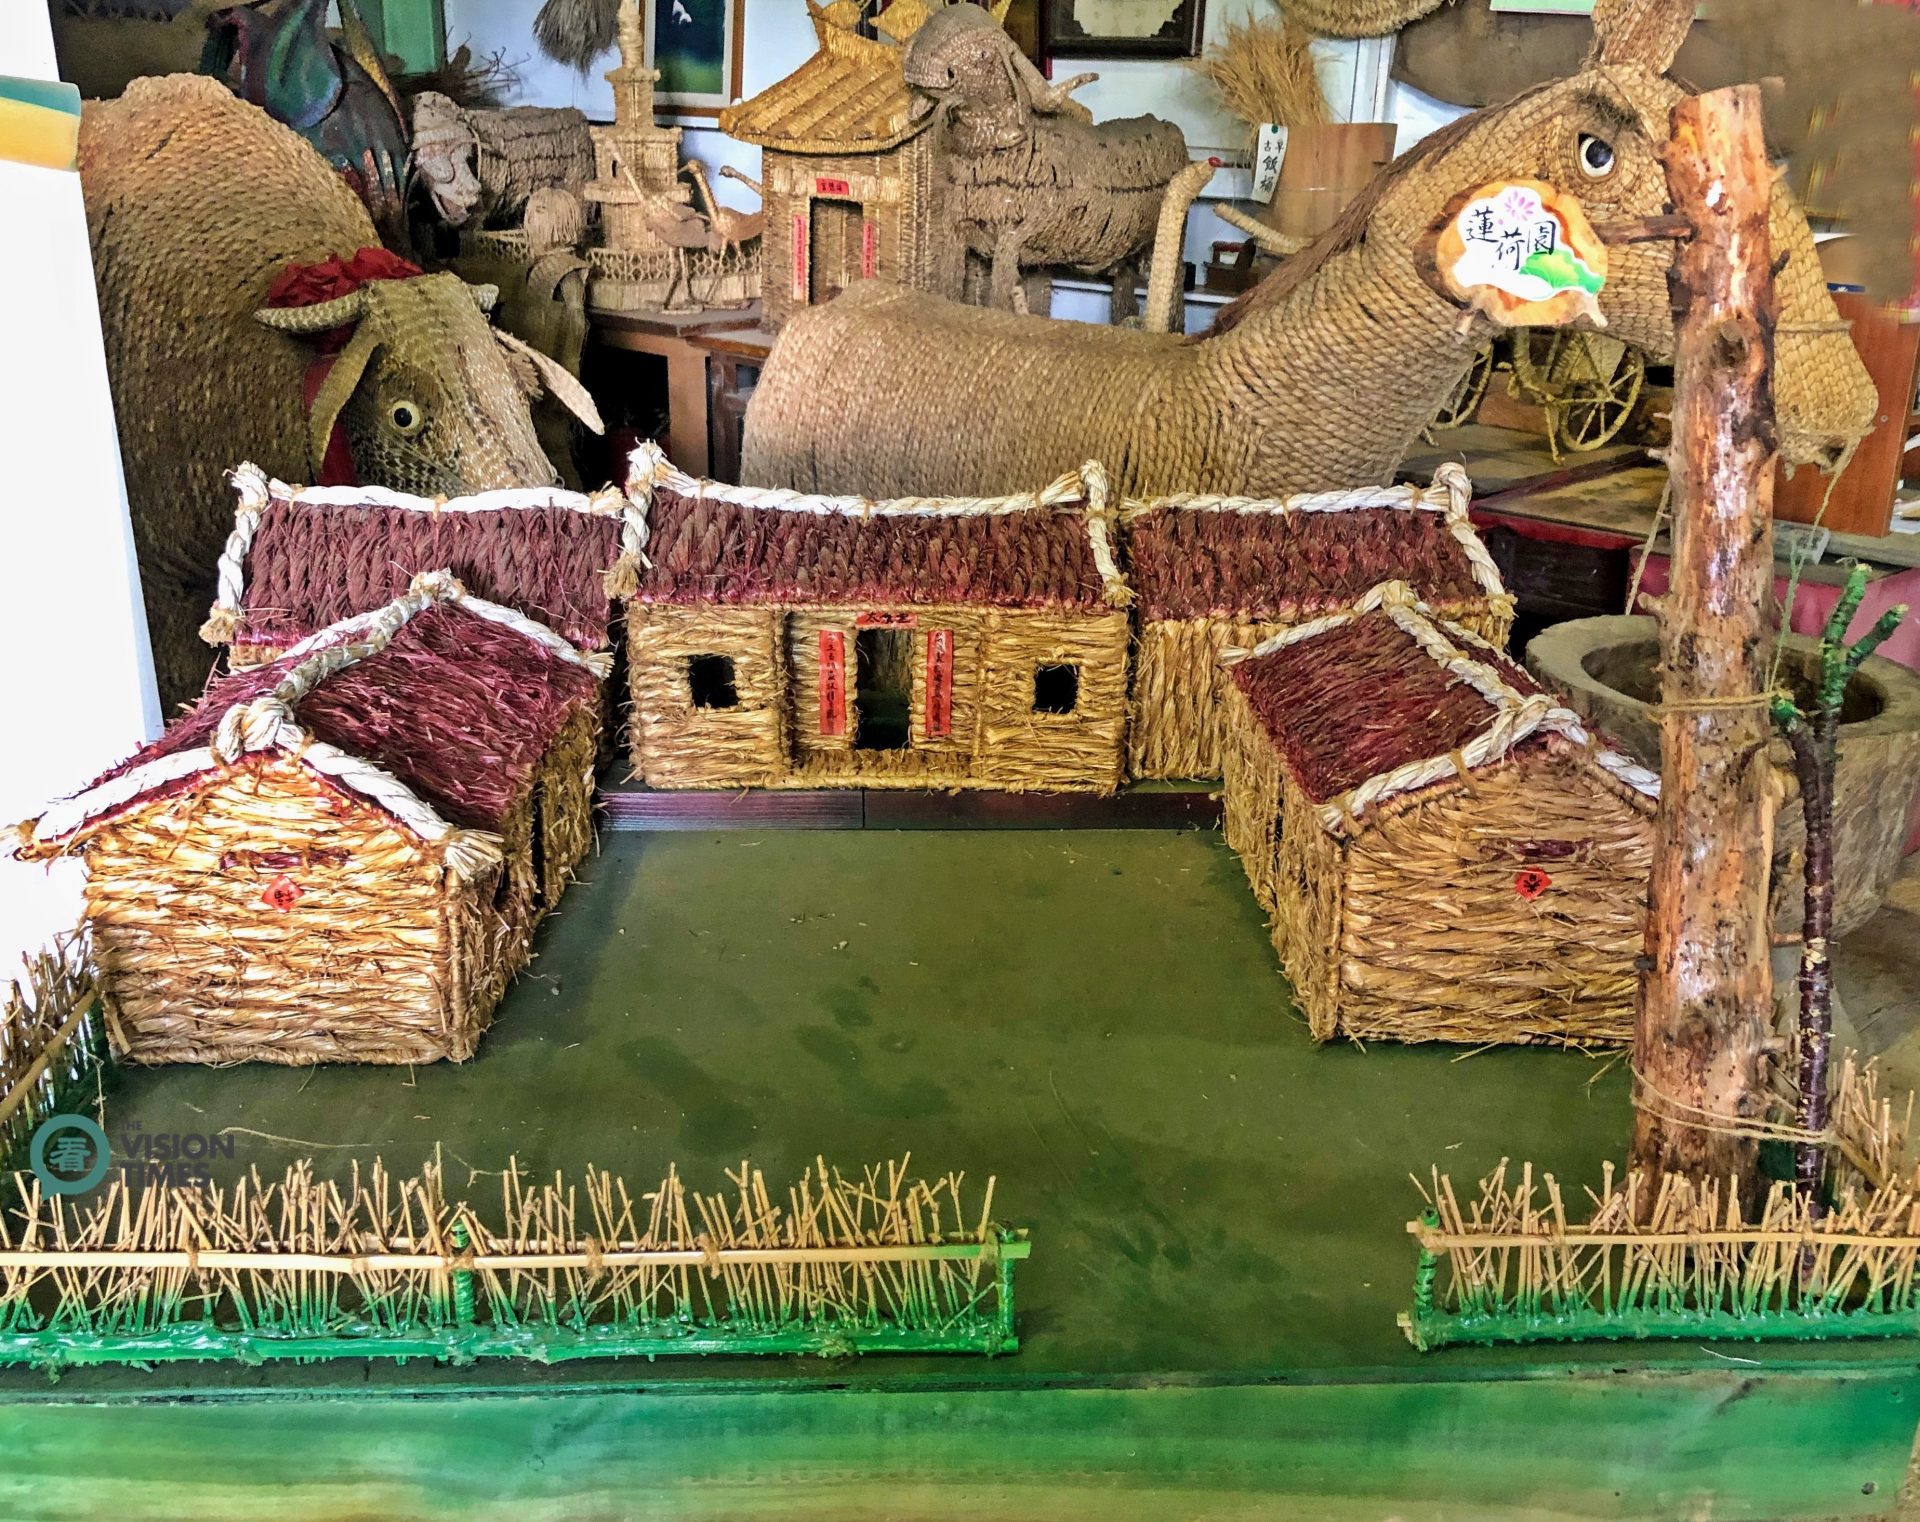 In the Straw Museum, there are various straw weaving handicrafts made by the farm operator. (Image: Billy Shyu / Vision Times)